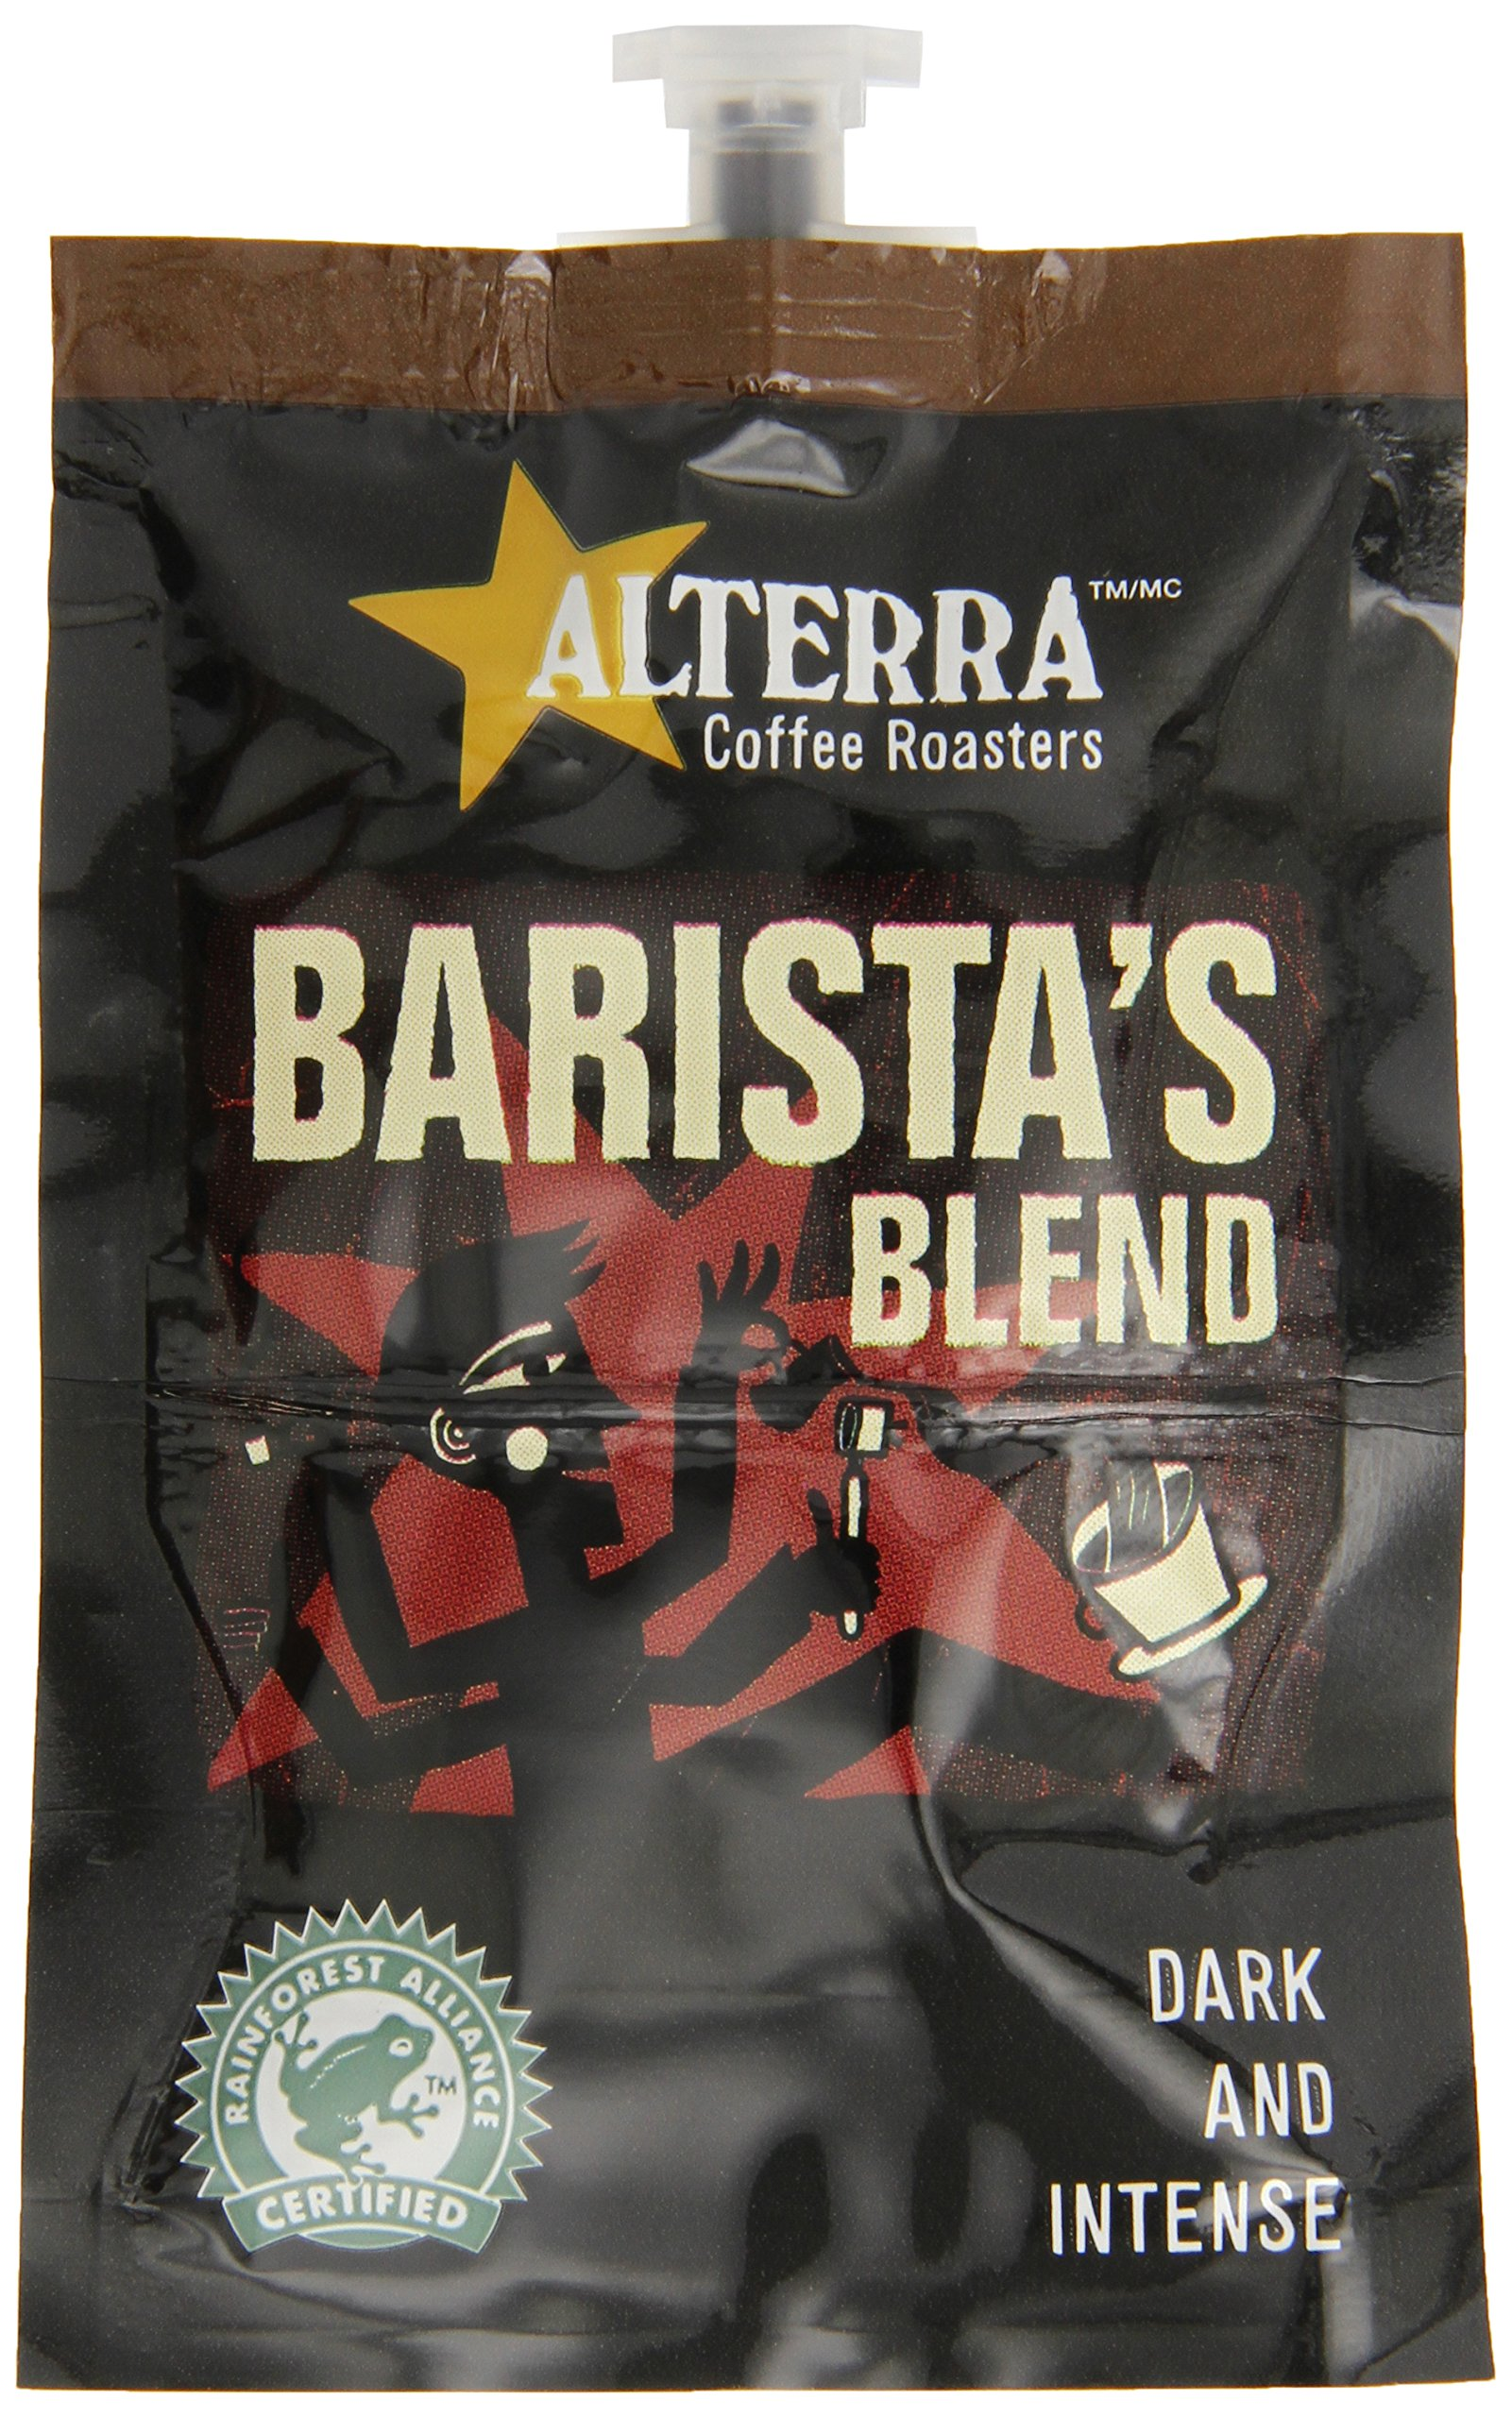 FLAVIA ALTERRA Coffee, Barista's Blend 20-Count Fresh Packs (Pack of 5) by Flavia